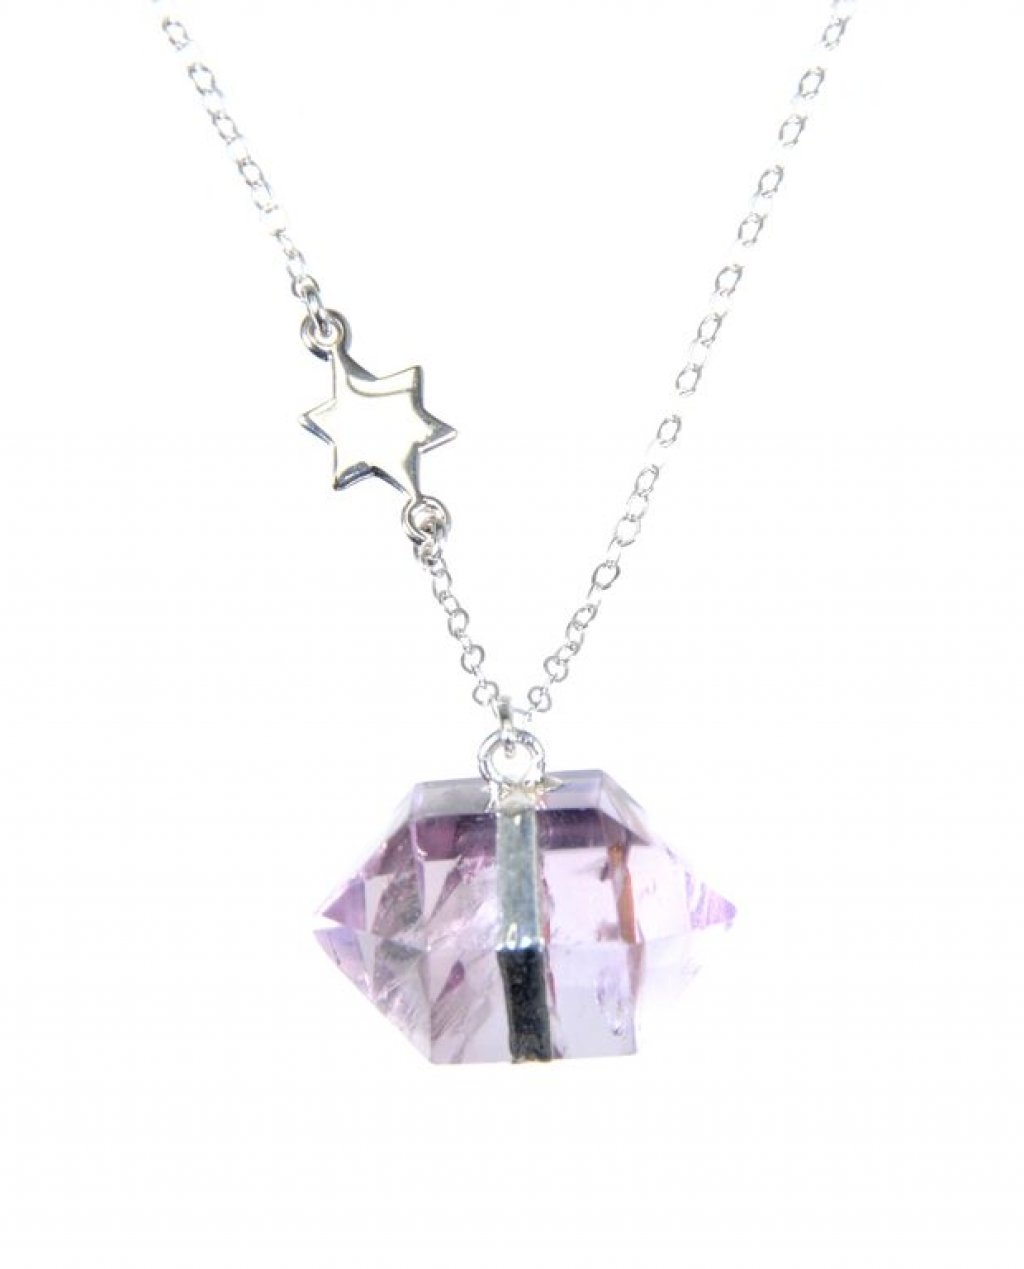 Pam Kerr Designs | Amethyst Nugget Necklace | Sterling Silver with Star Charm